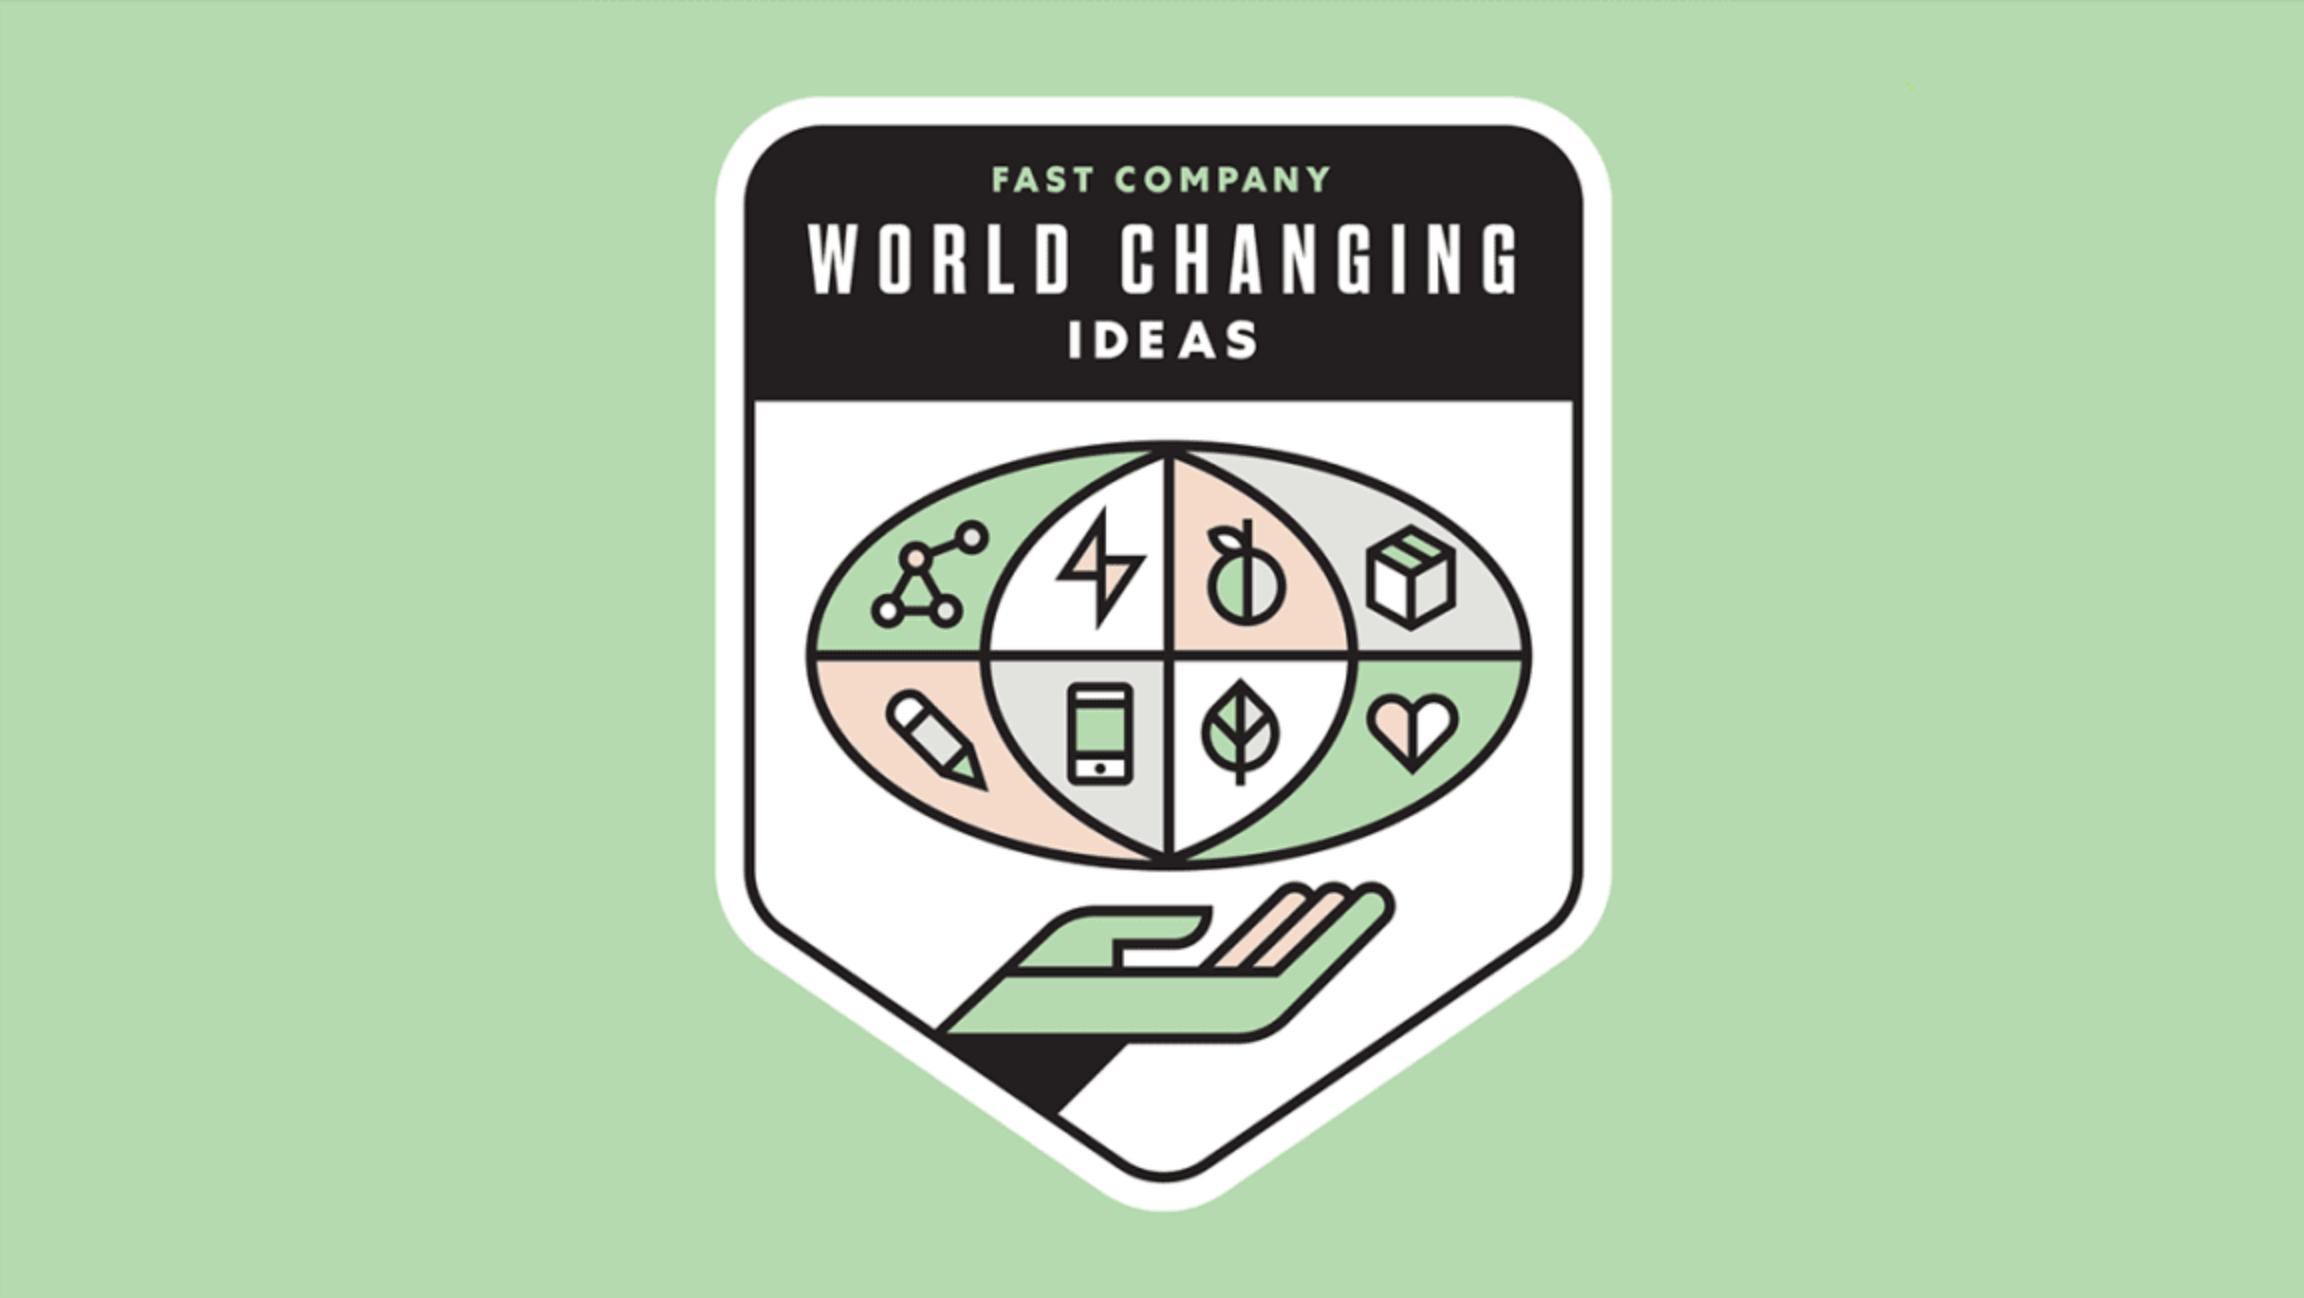 Fast Company's Wold Changing Ideas